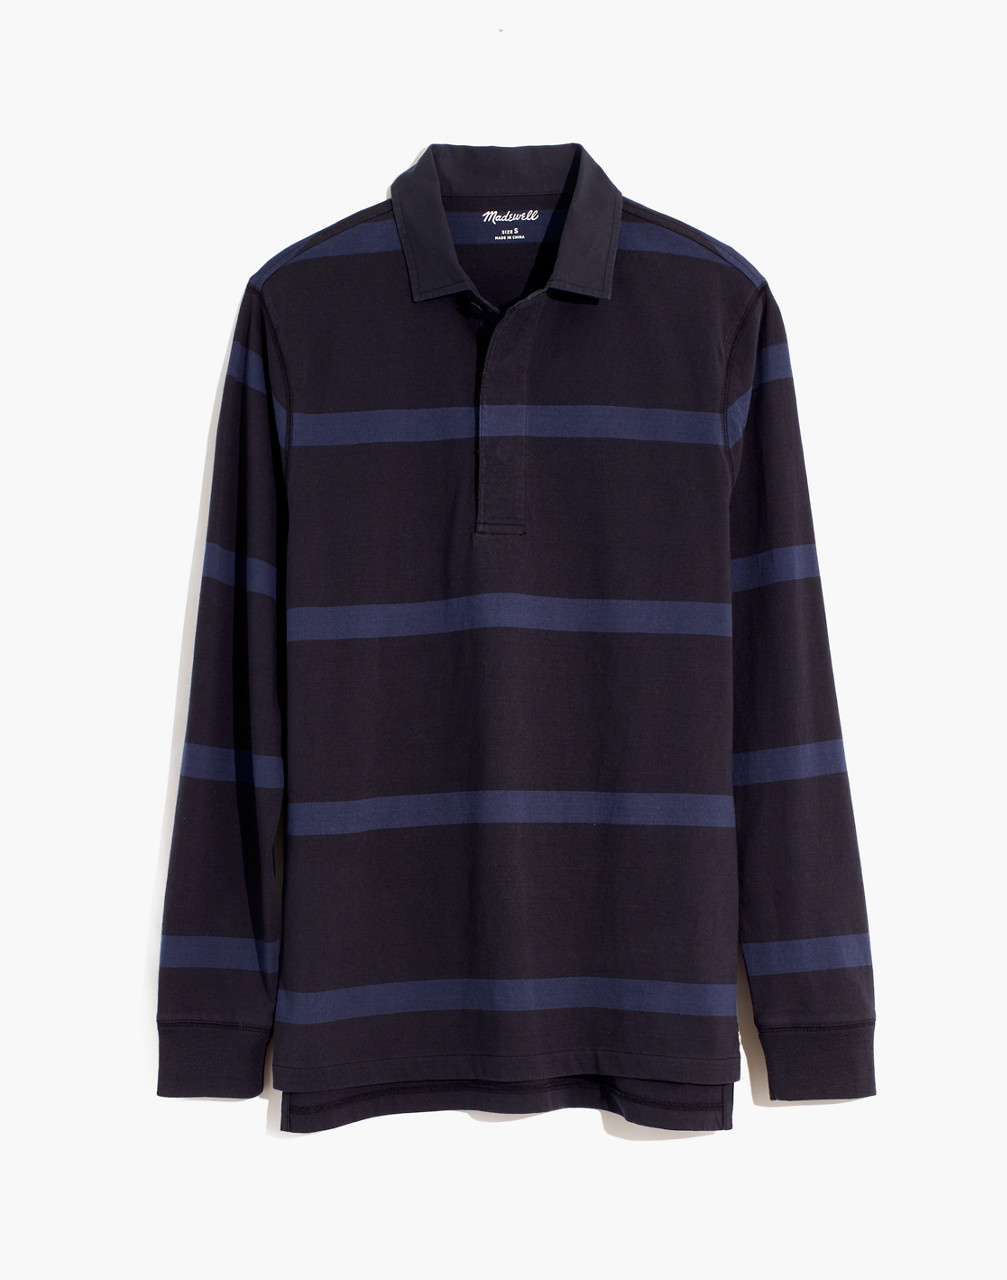 80s Men's Clothing | Shirts, Jeans, Jackets for Guys Striped Rugby Shirt $79.50 AT vintagedancer.com